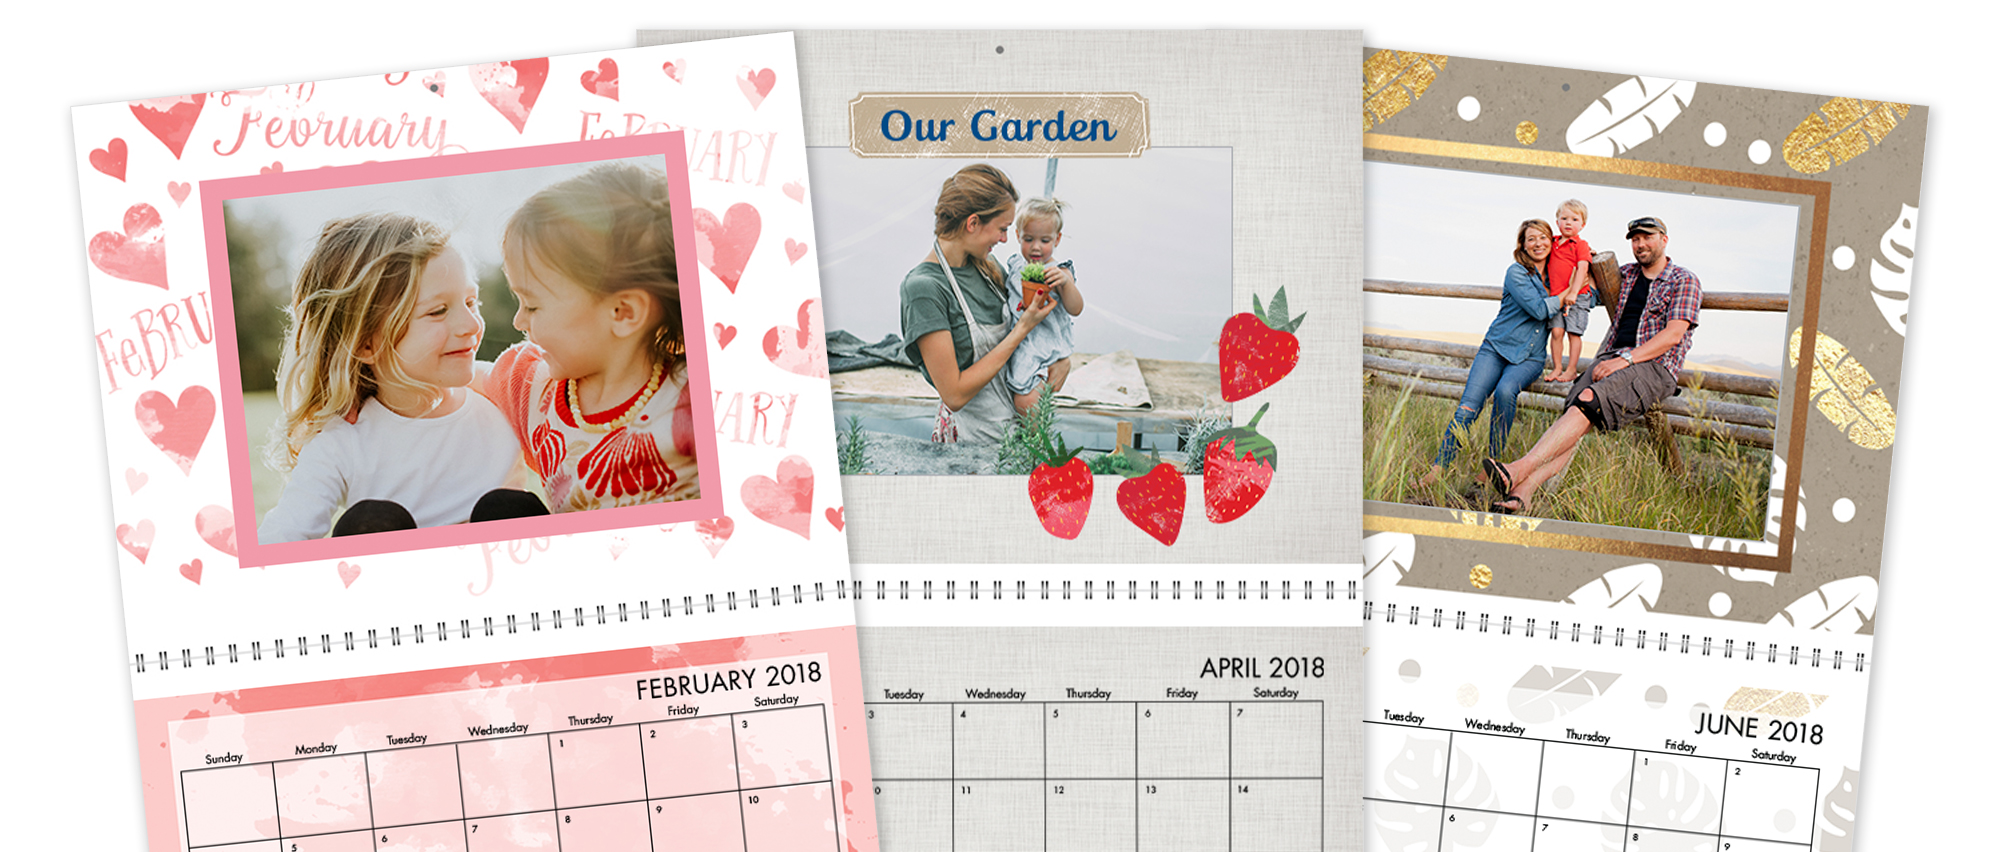 Calendar Background Designs, Patterns, And Colors